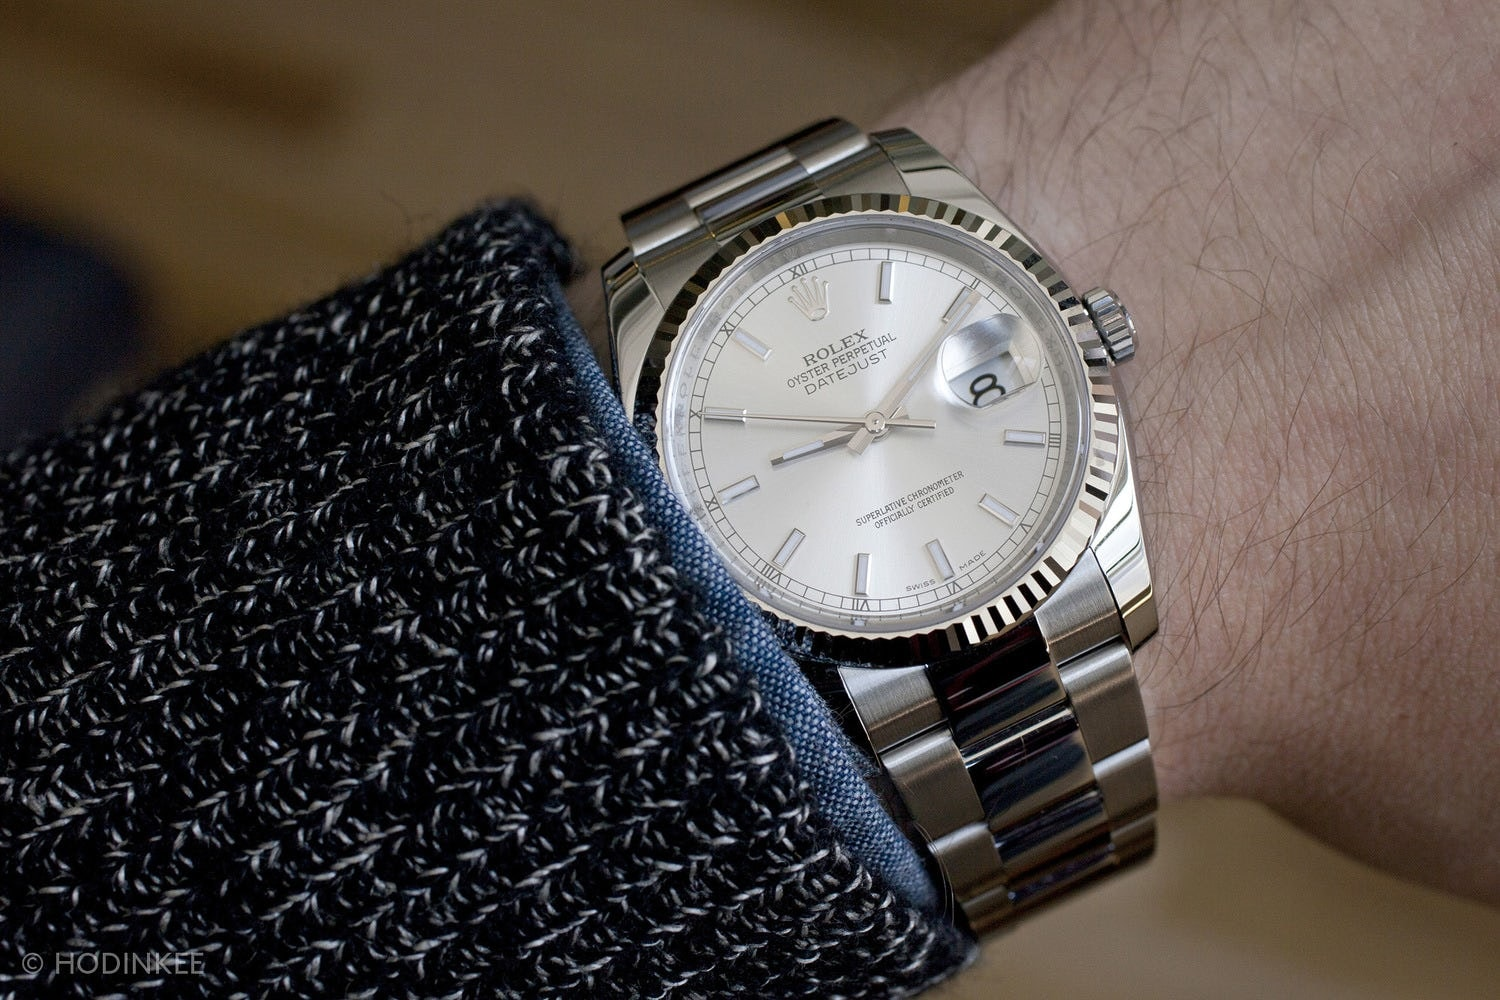 A Week On The Wrist: Ten Of The Biggest, Baddest HODINKEE Reviews Ever A Week On The Wrist: Ten Of The Biggest, Baddest HODINKEE Reviews Ever datejust